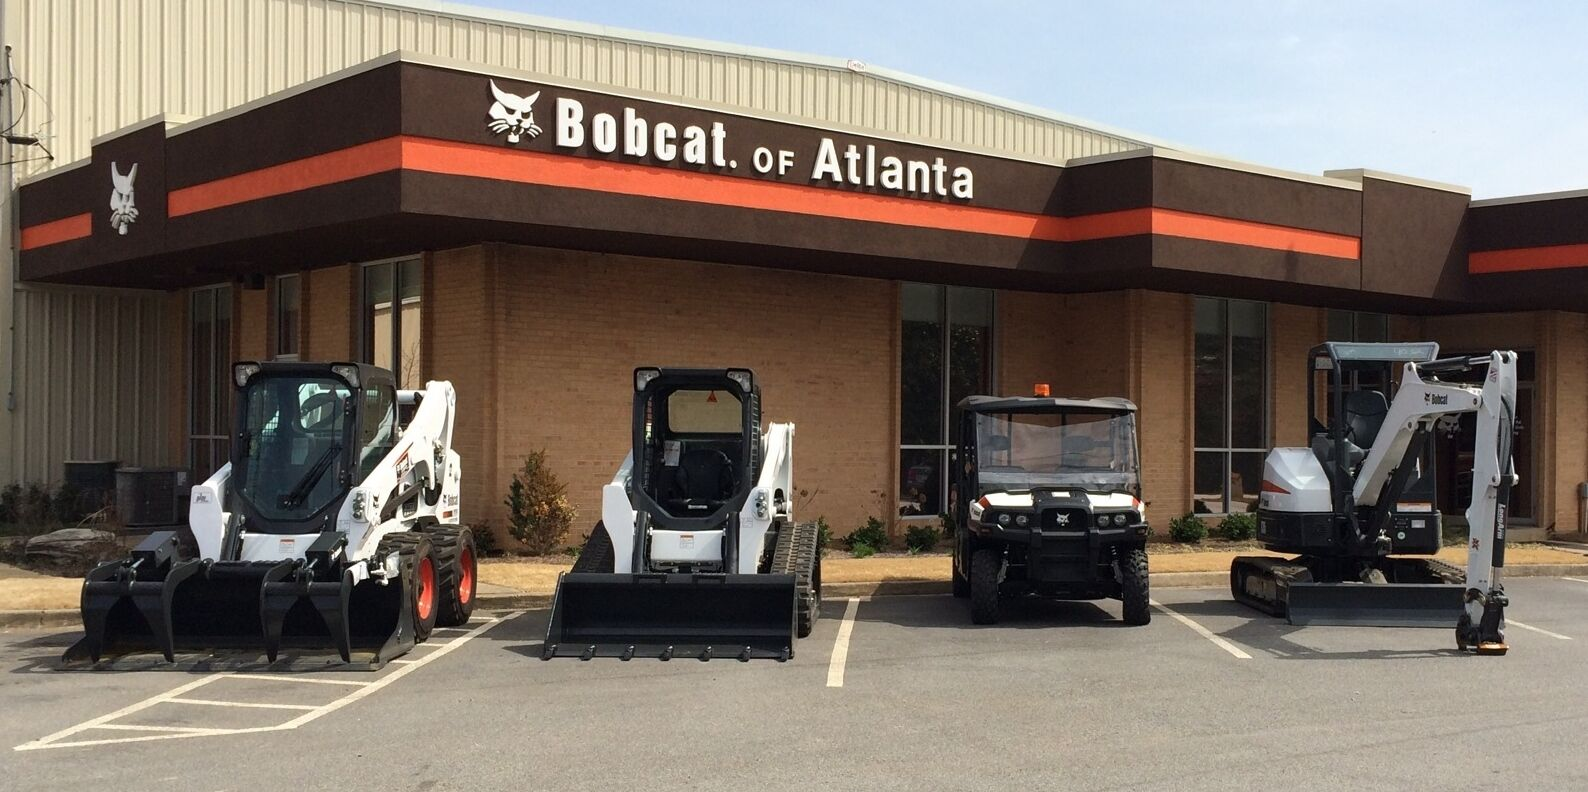 Bobcat of Atlanta